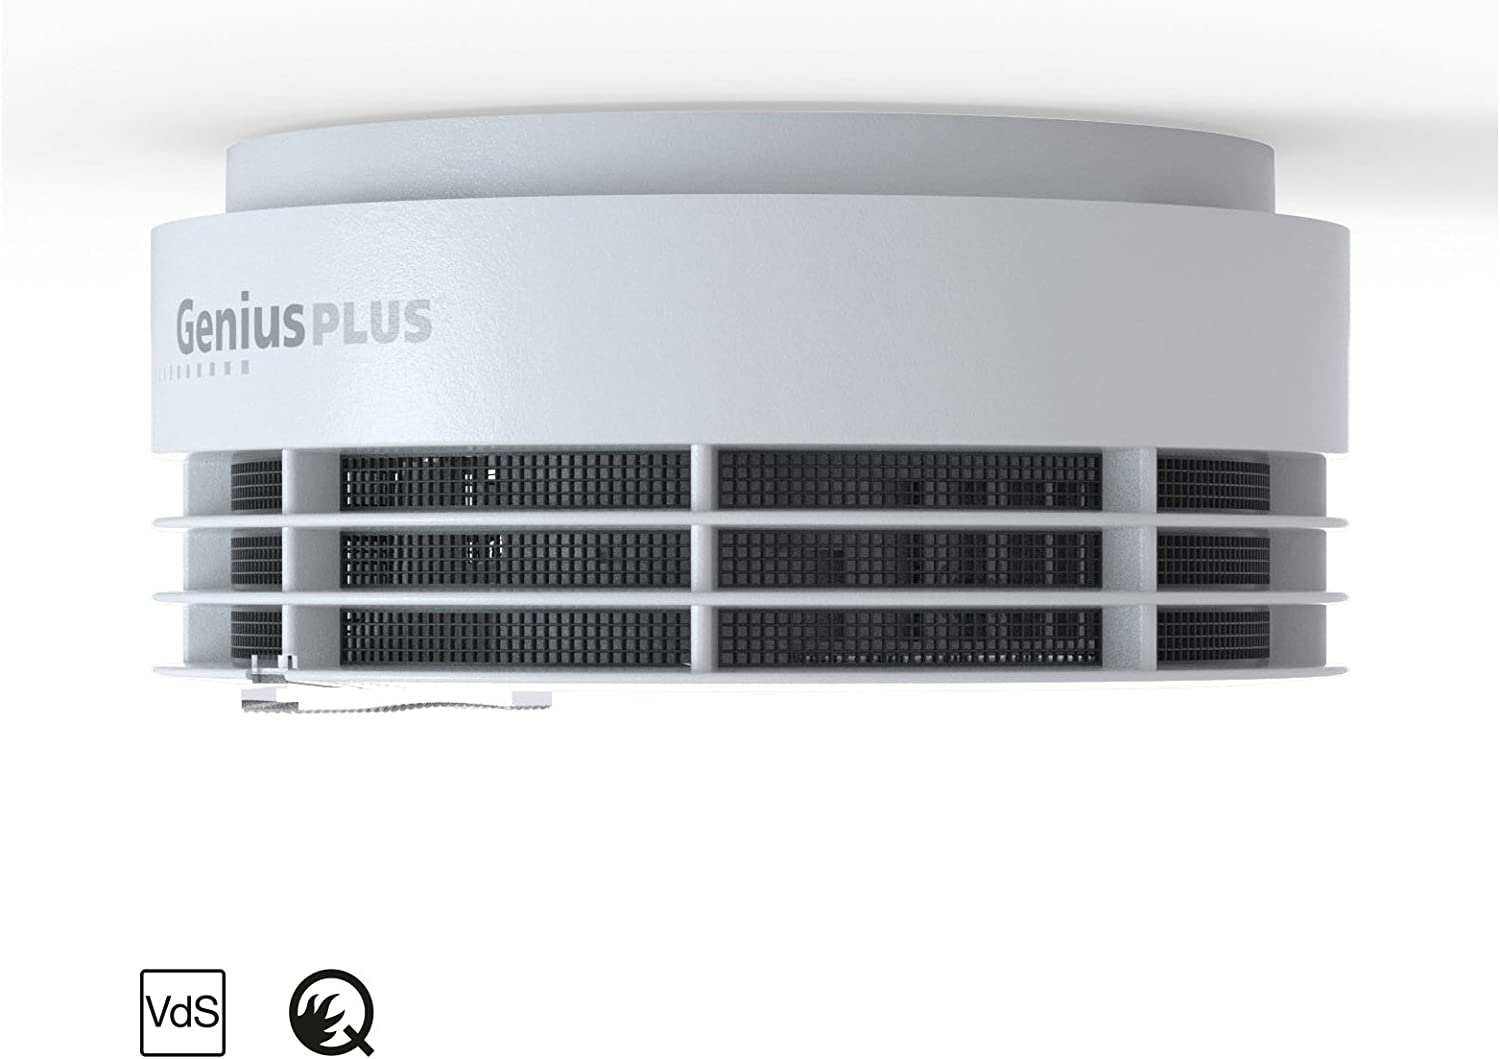 white 31-5000001-12-01 White LED Dims at Night 10/Year Service Life Hekatron Genius H Smoke Alarm with Optimised Test Button and Built-in Battery